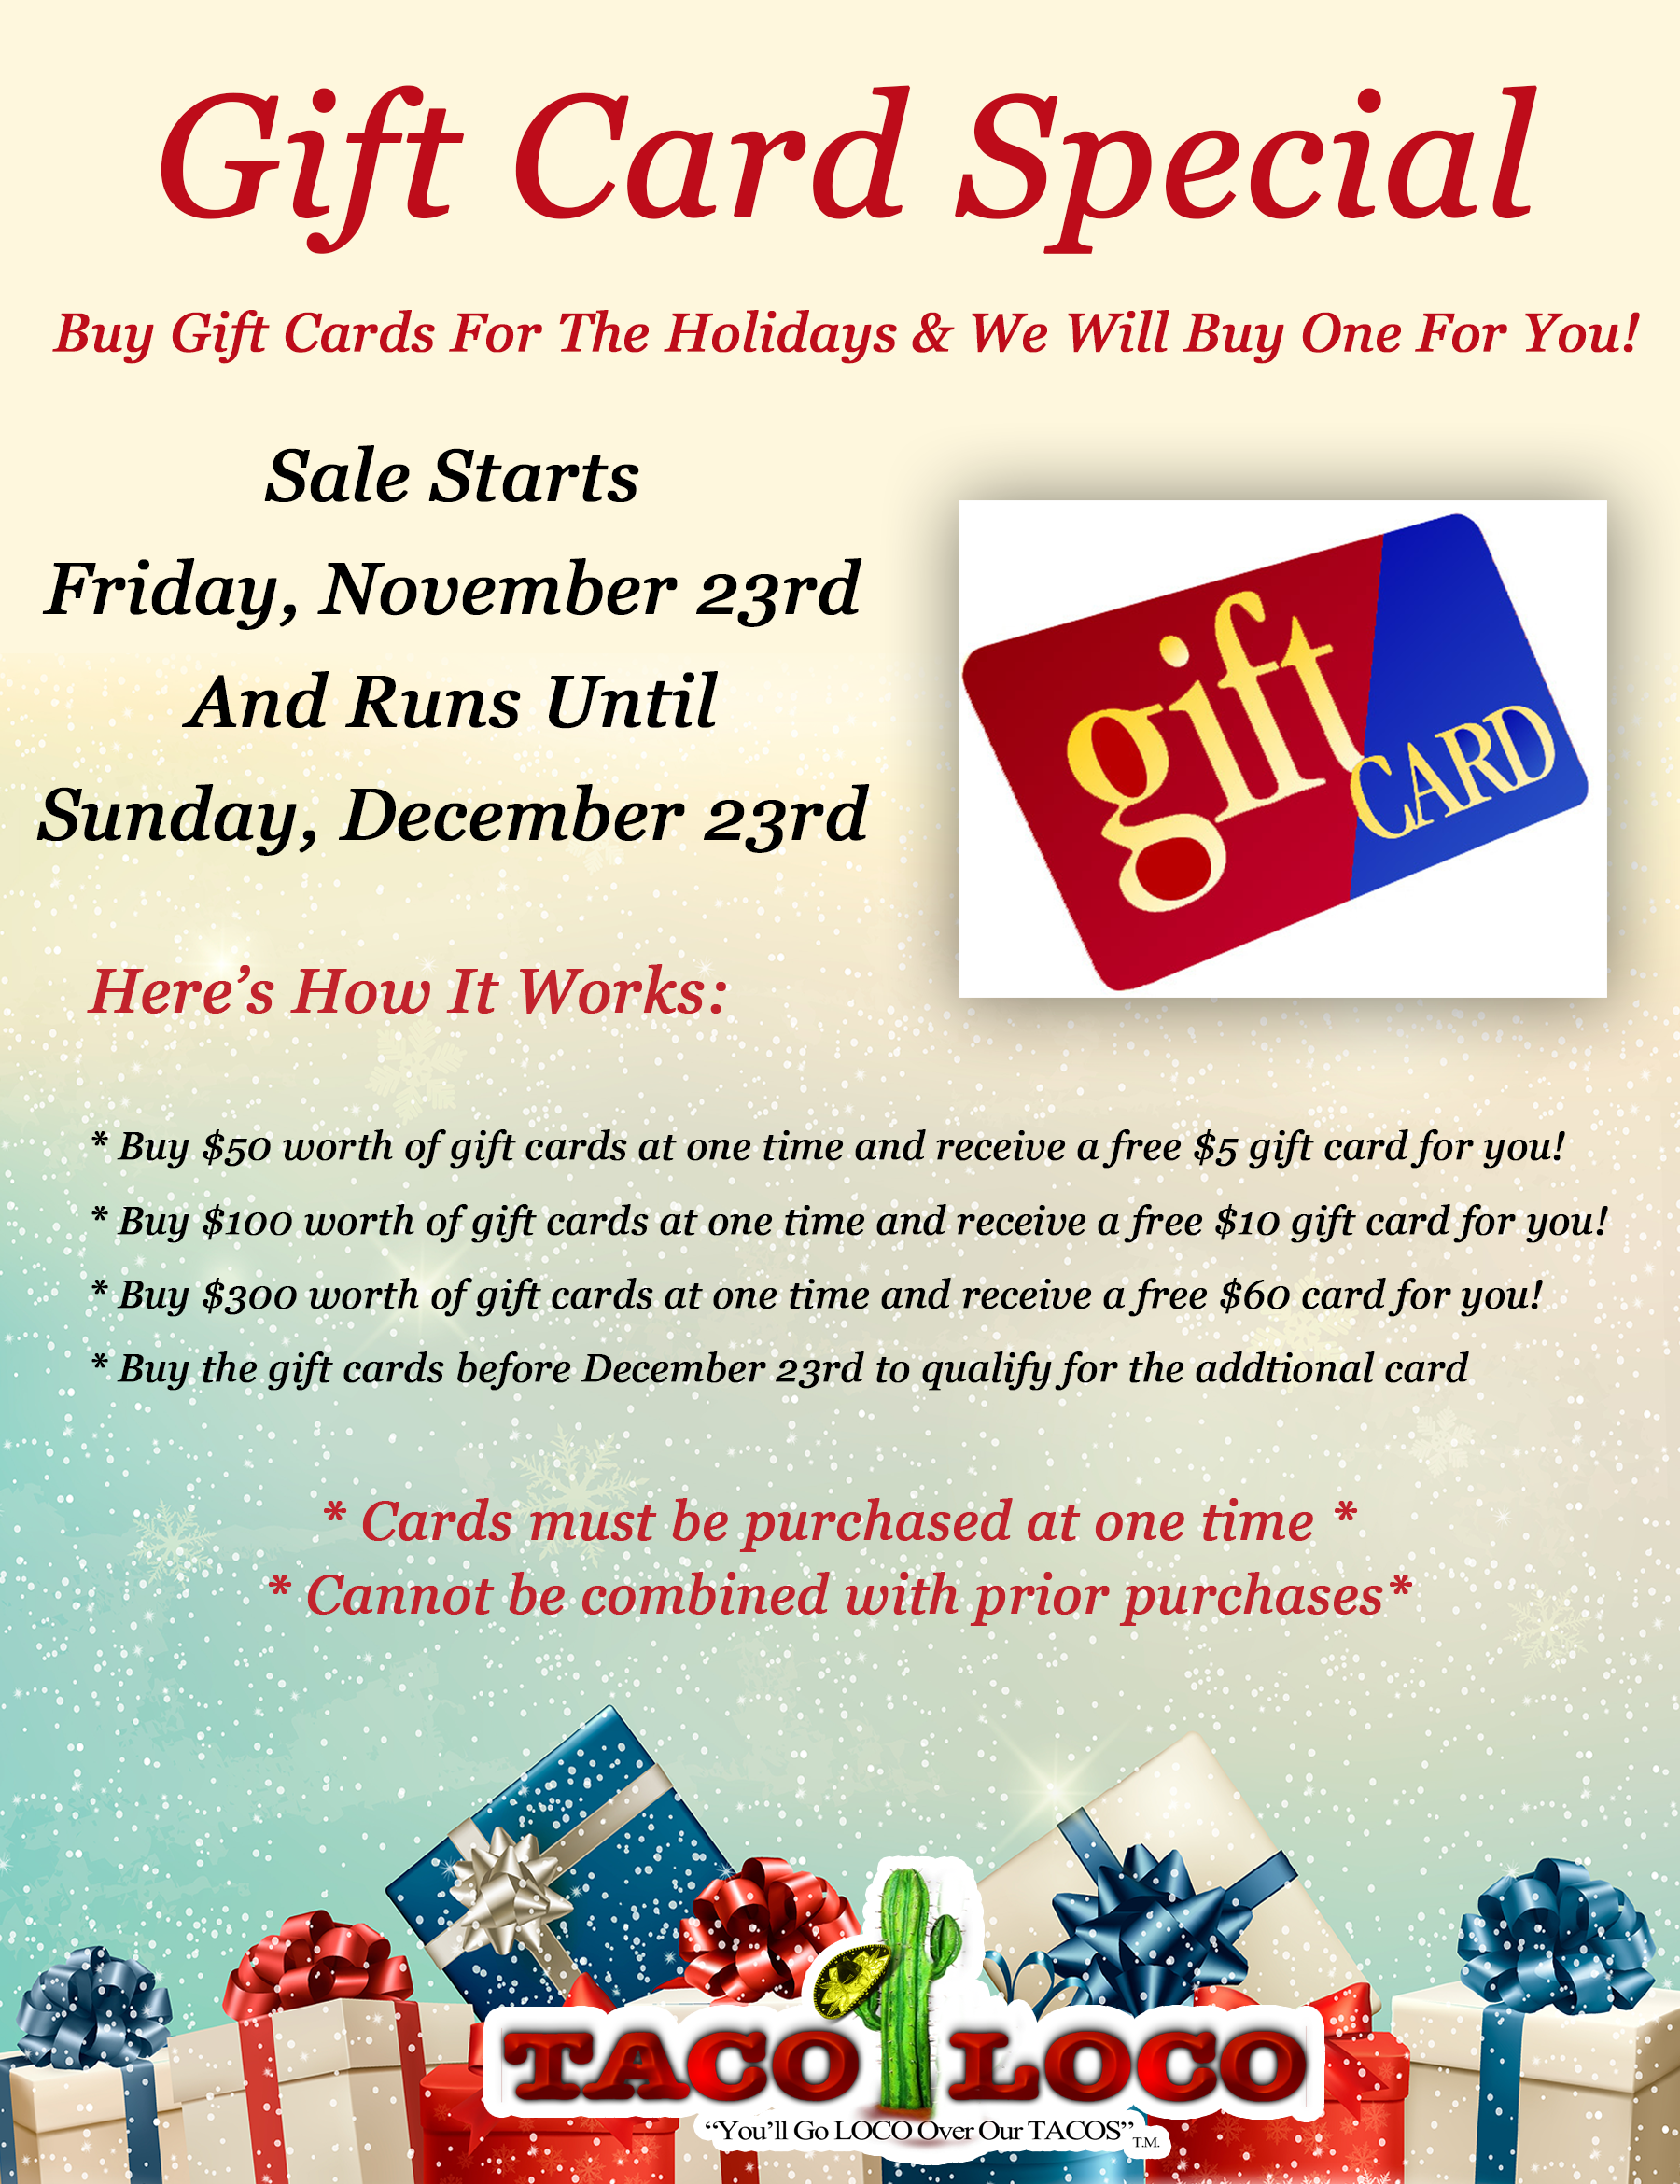 Gift Card Special - BOGO until December 23rd 2018